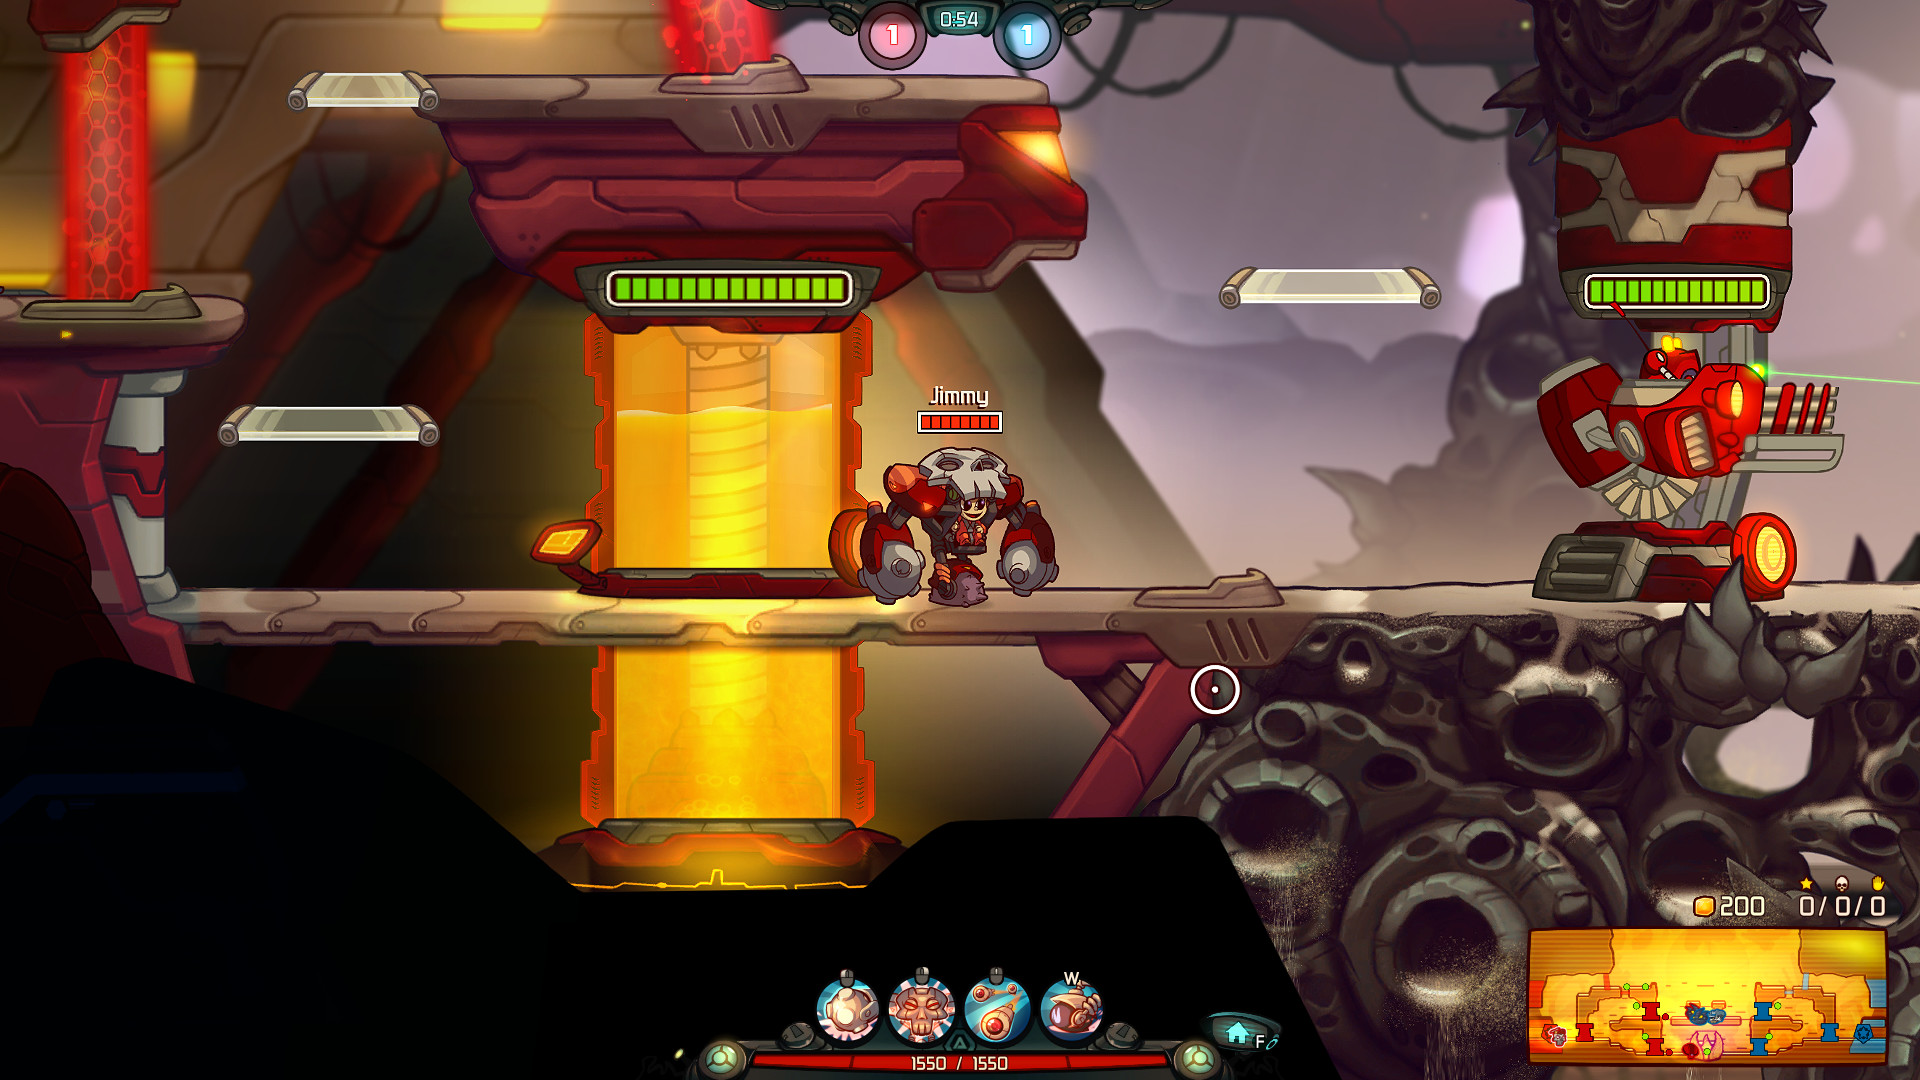 Jimmy and the LUX5000 - Awesomenauts Character screenshot